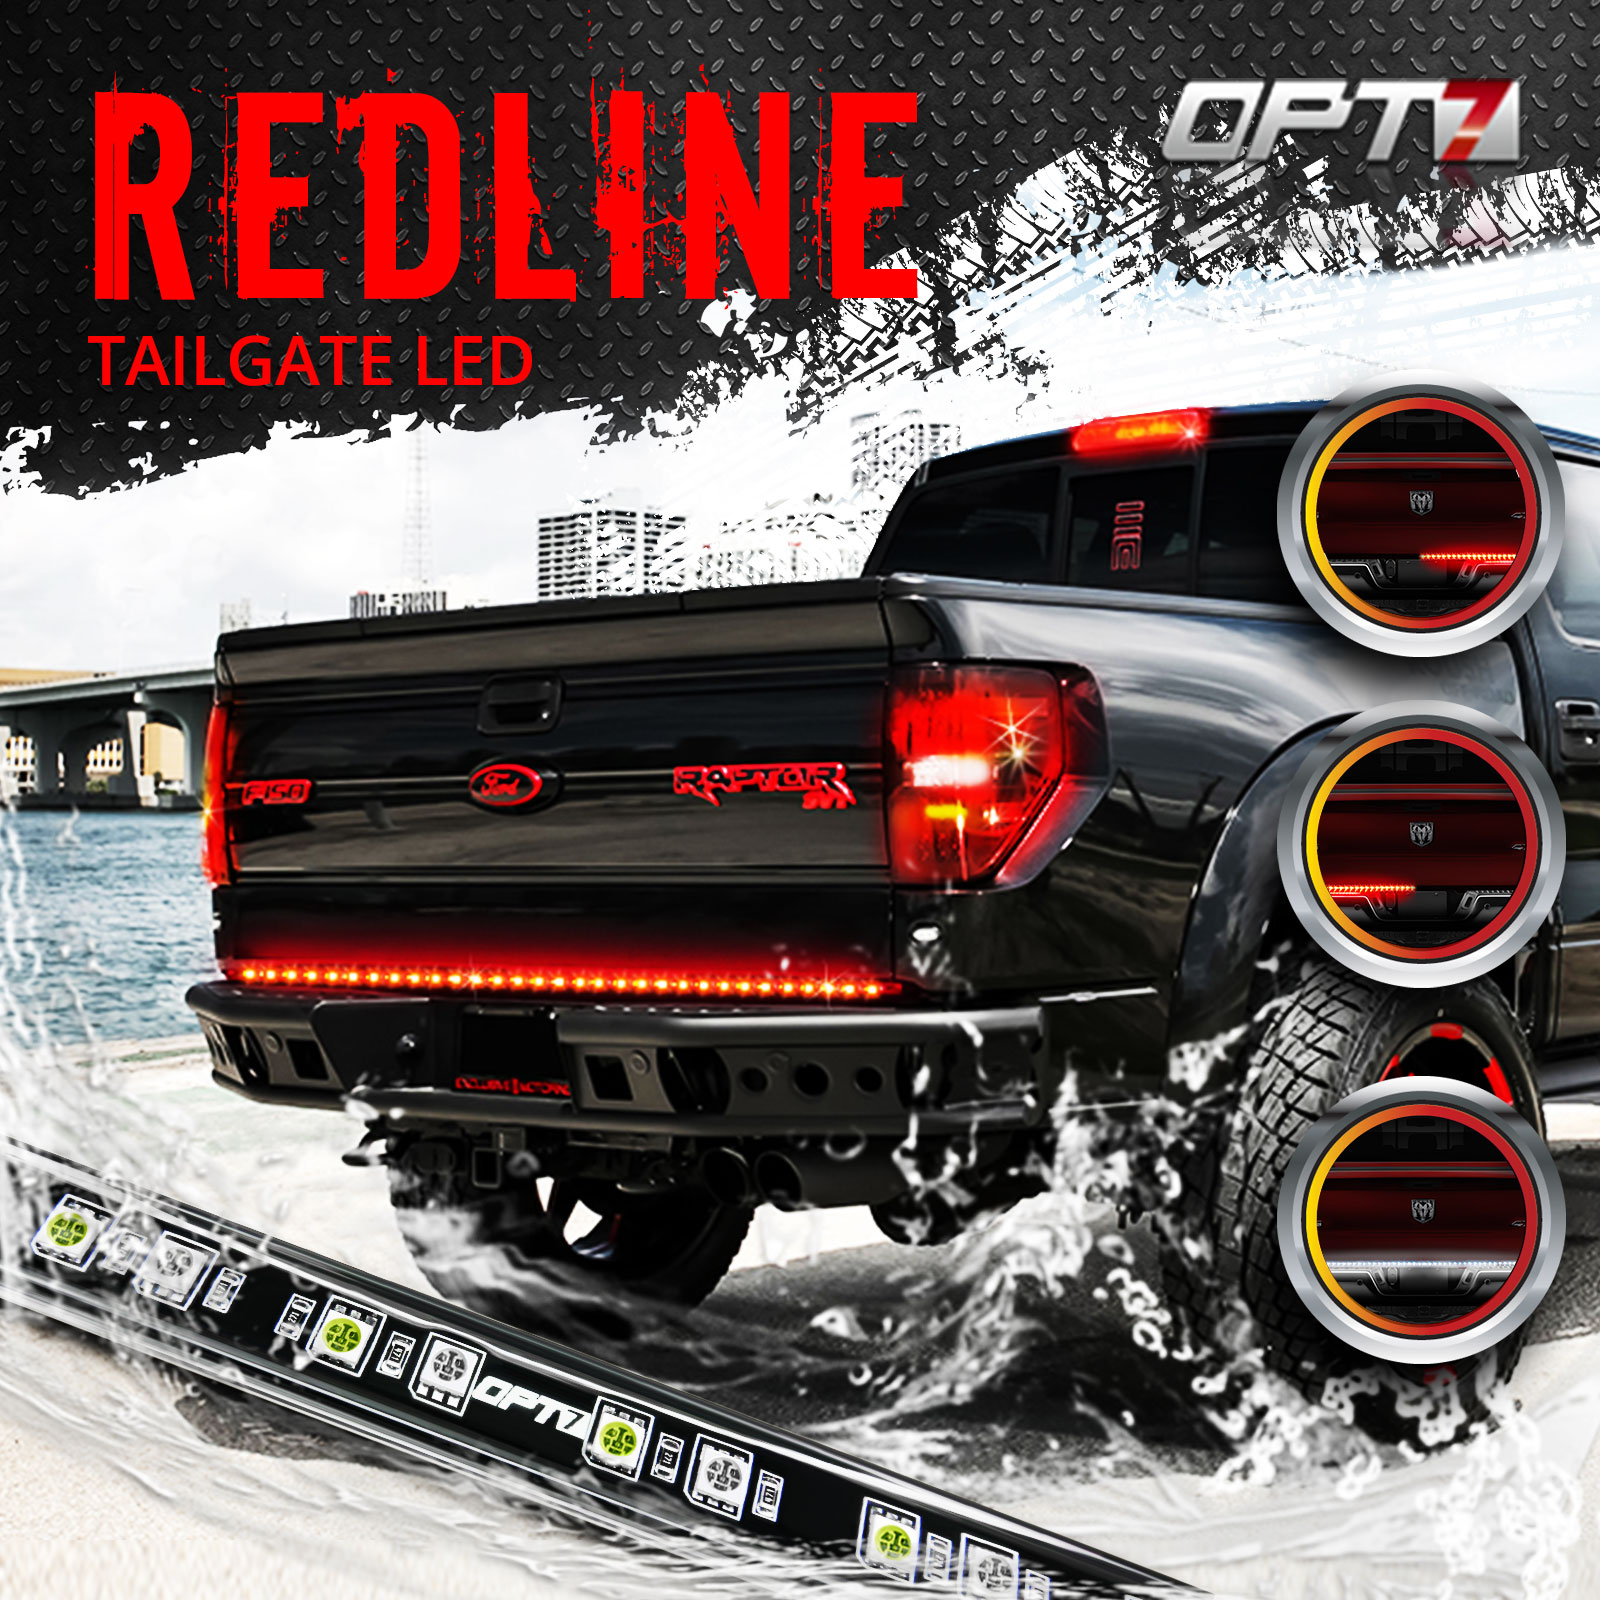 60 Redline LED Tailgate Light Bar TriCore LED Weatherproof